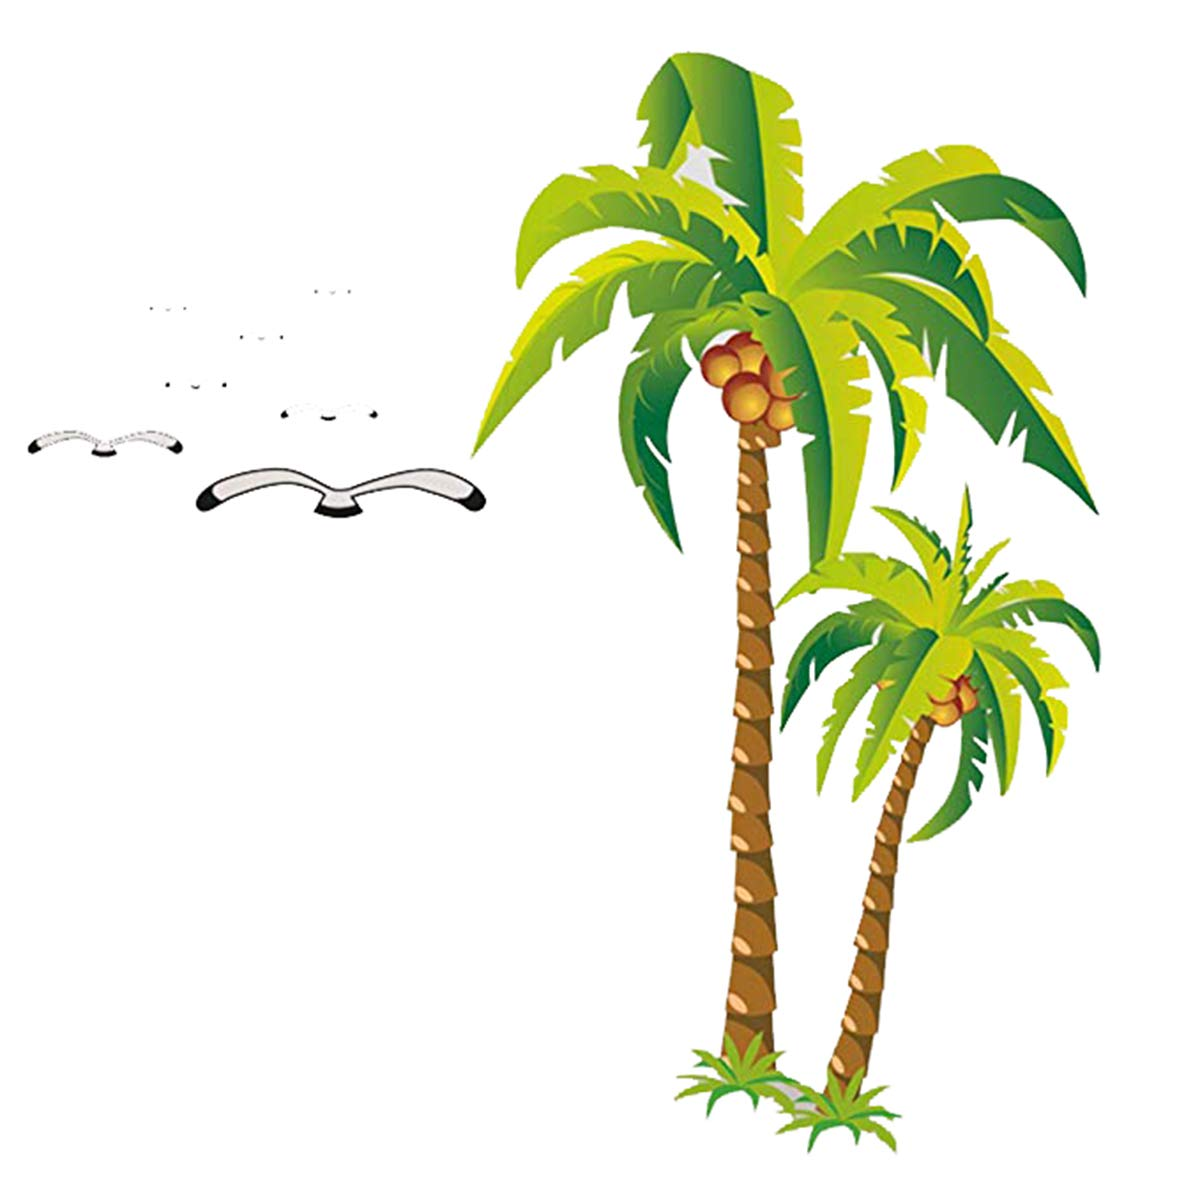 YIHOPAINTI DIY Removable Wall Decal Stickers Love Palm Tree Wall Stickers for Kids Room Living Room Office Bathroom Kitchen Bedroom Home Decor (coconut tree 2335'')